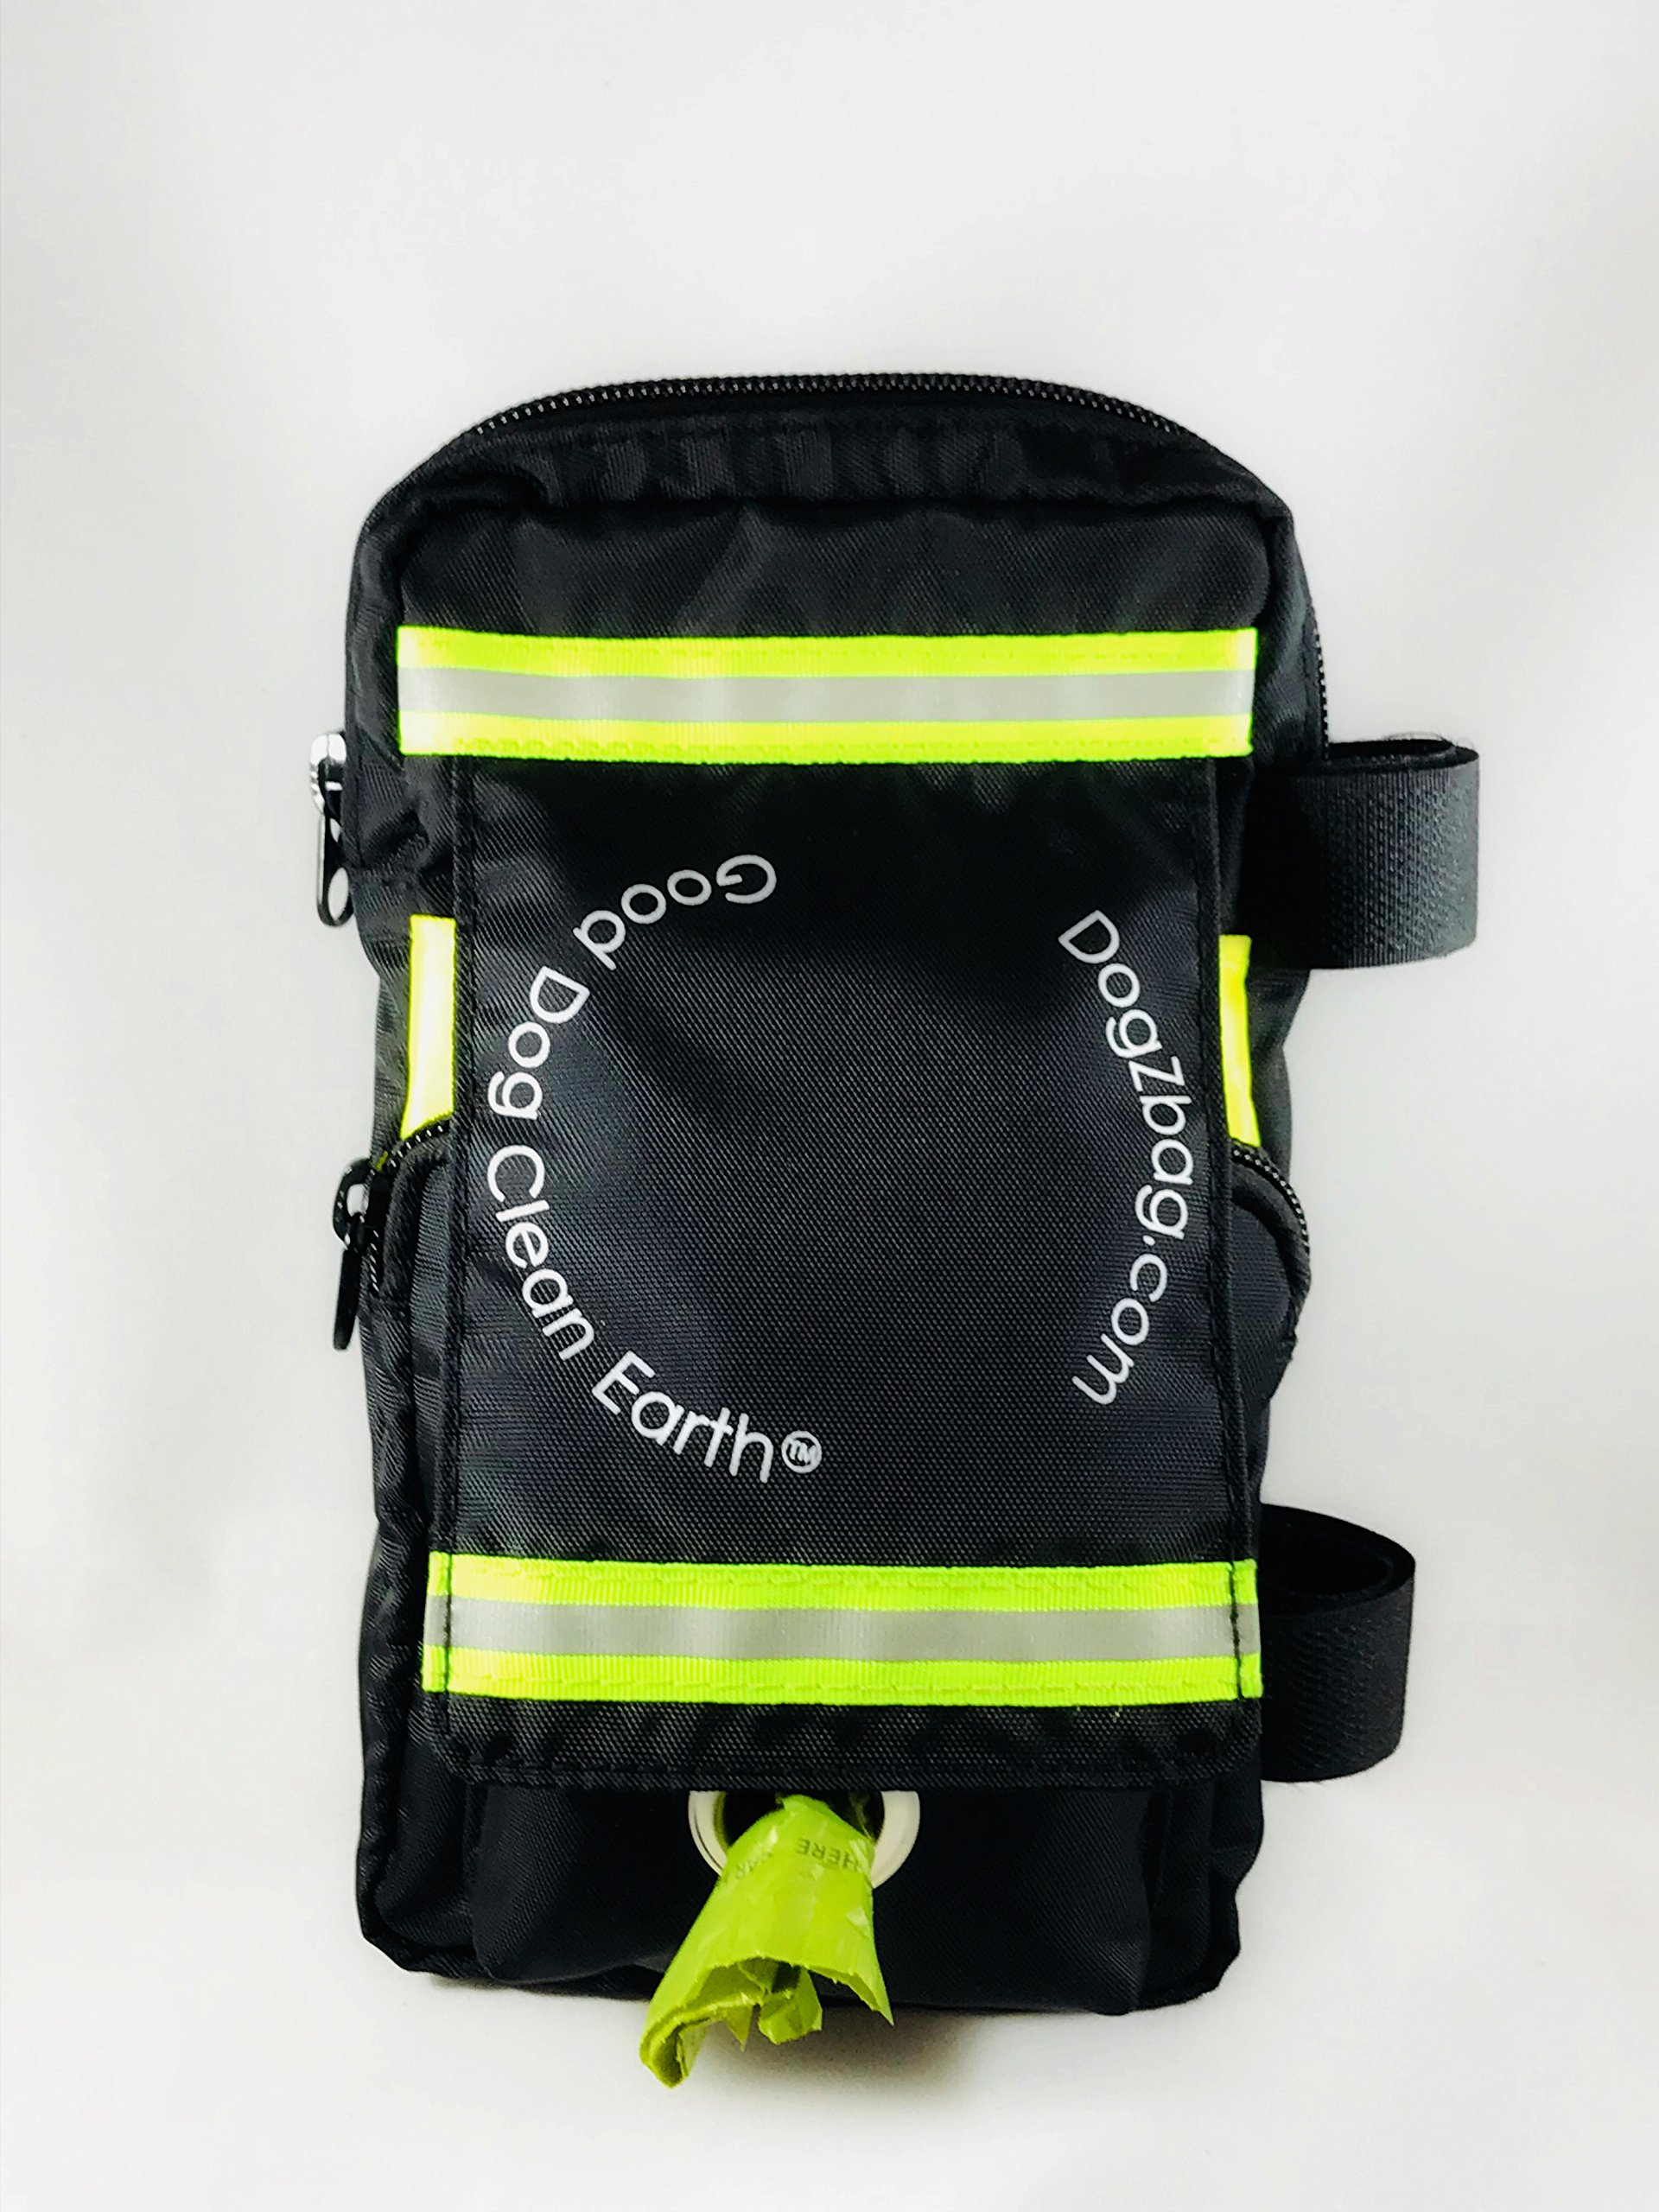 Dog Walking Bag - 5 separate pockets. Holds keys, cash, dog treats, poop bags, cell phone, water bottle and used waste bags. Easily attaches to your leash. Black with neon green reflective tape.